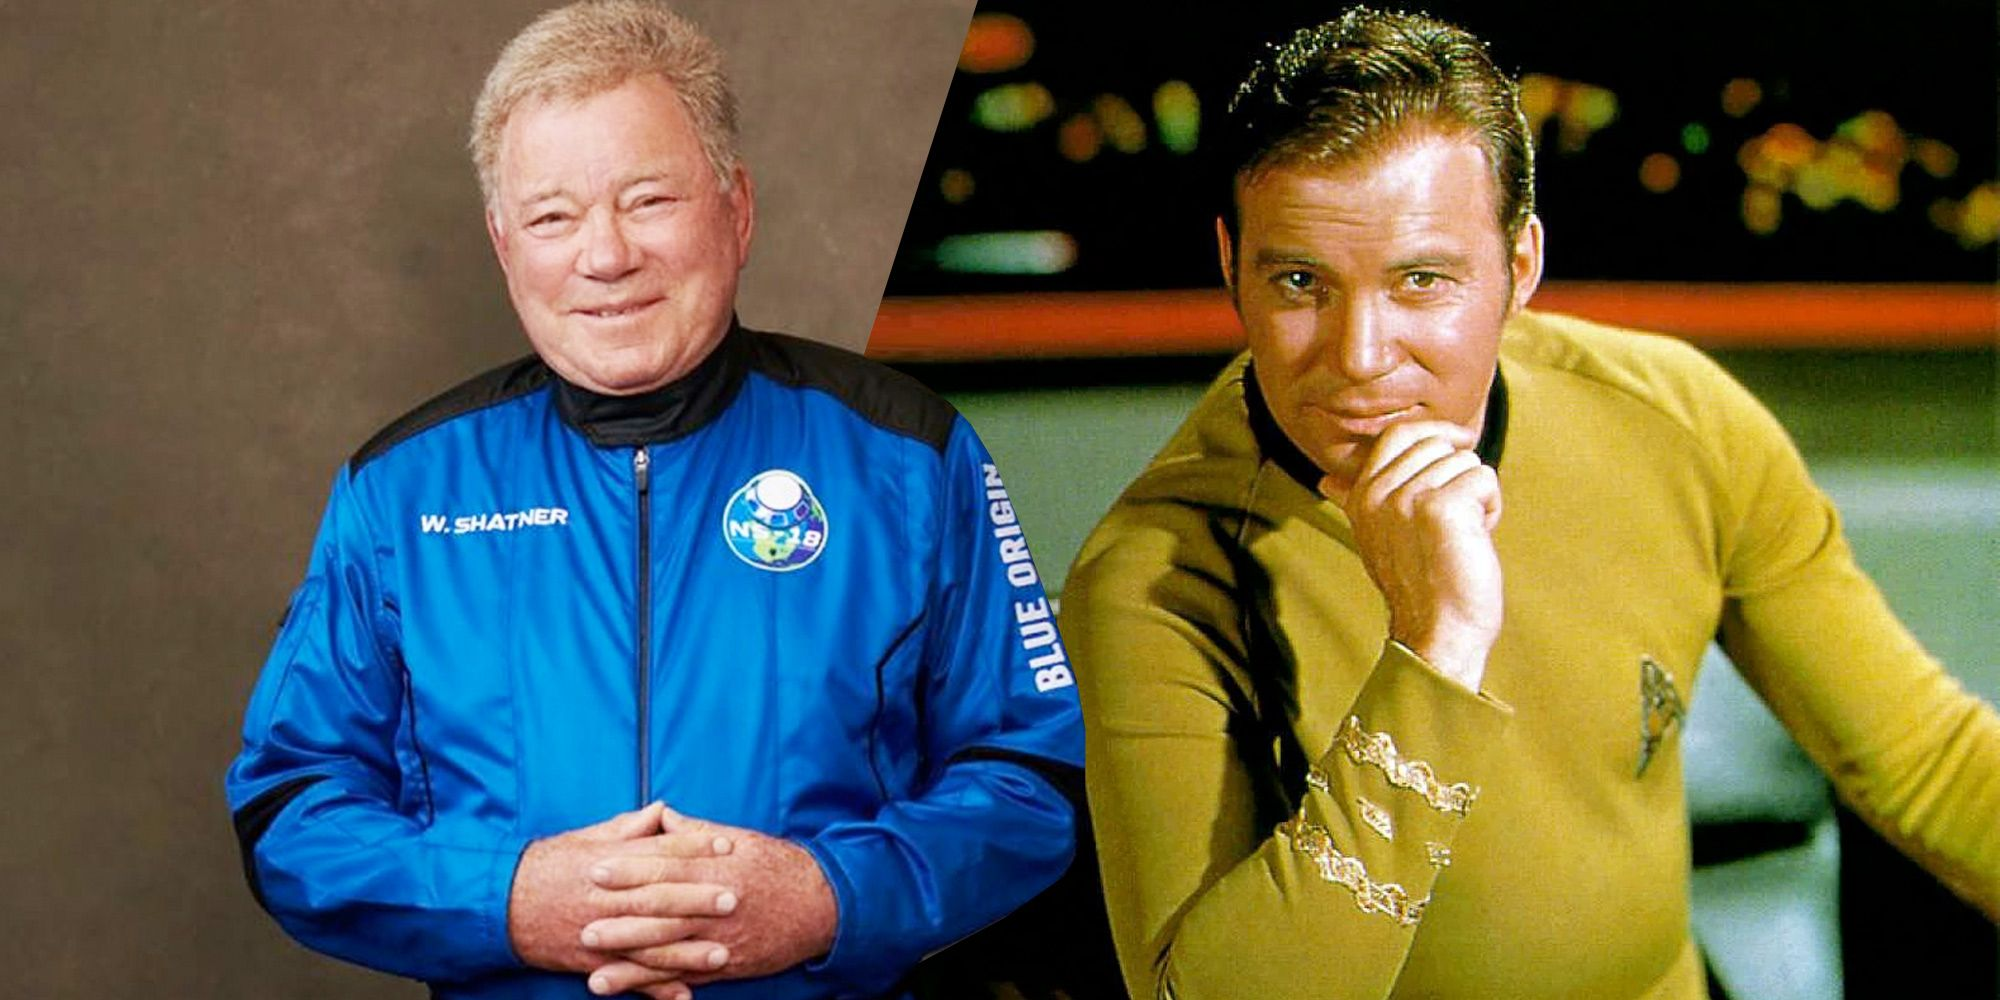 Vince McMahon Comments On William Shatner Going To Space